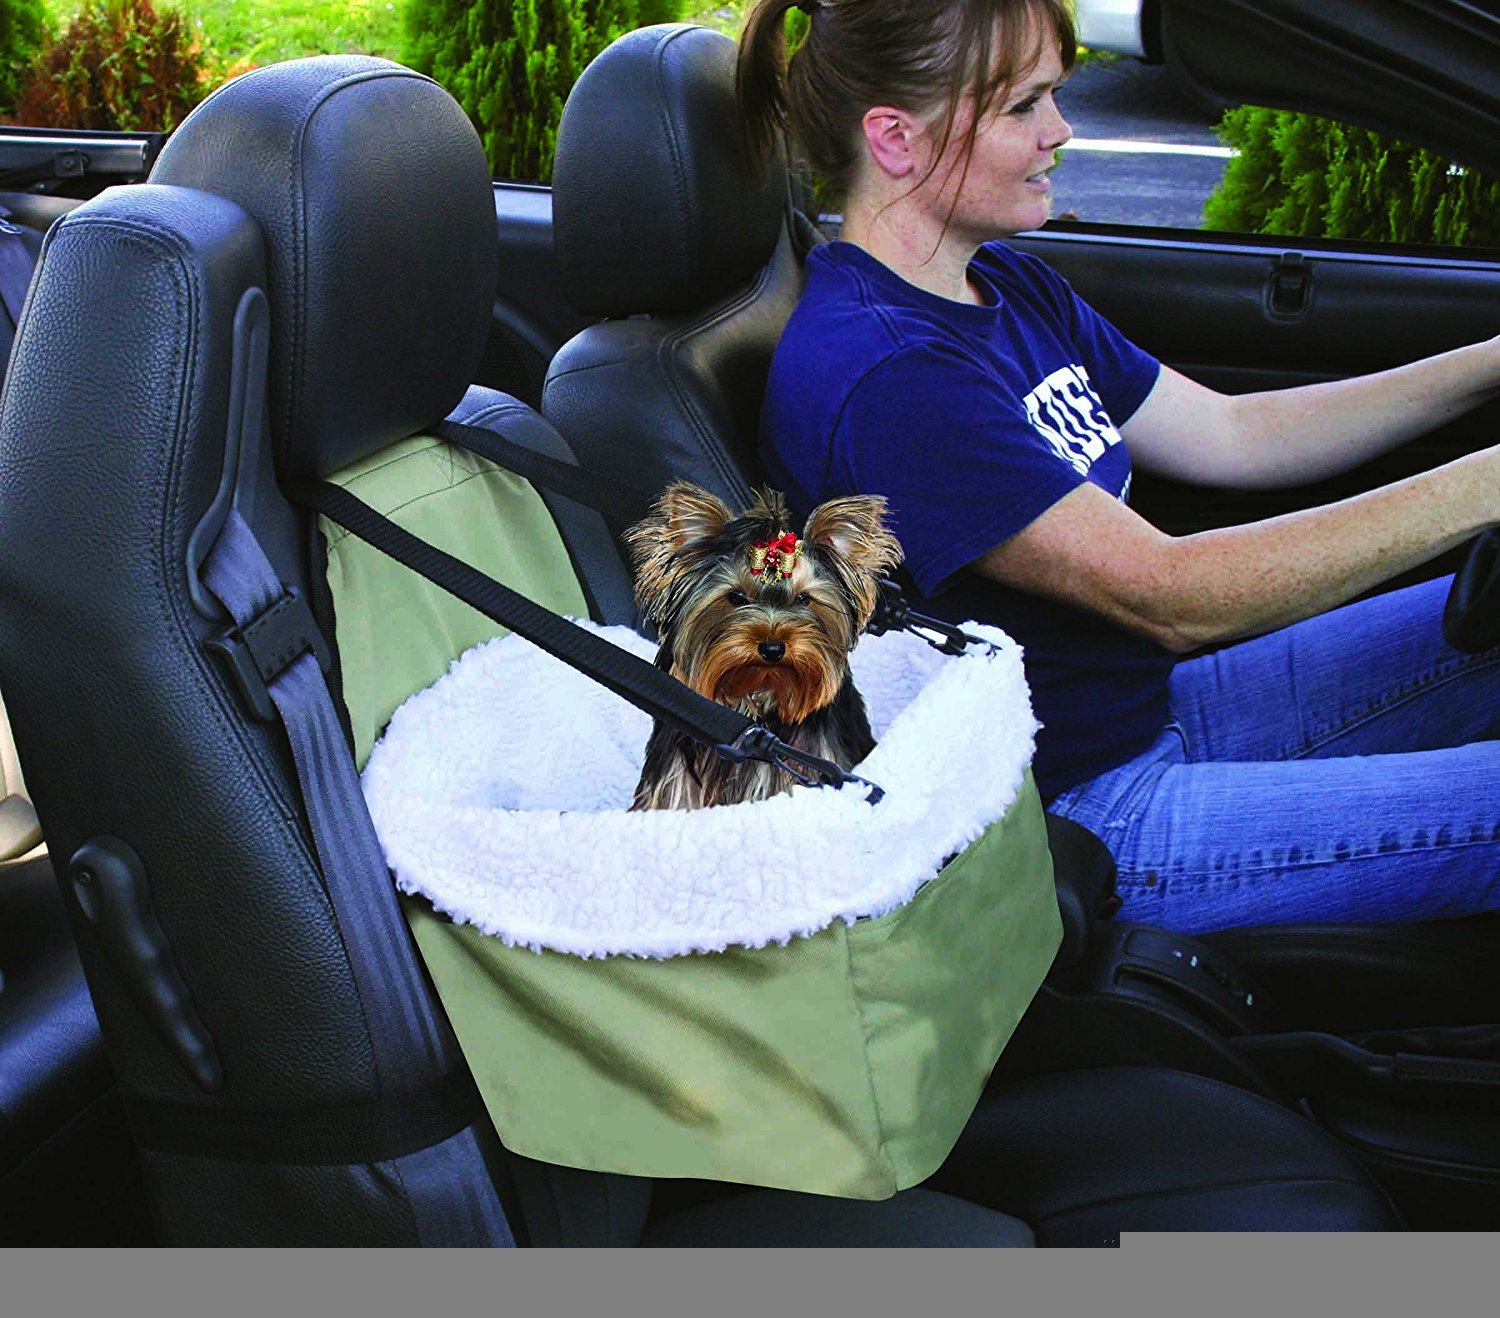 SHUYUE Travel Animals Cats Dogs Matter Companion Pet Car Booster Seat, Pets Up to 15-24lbs